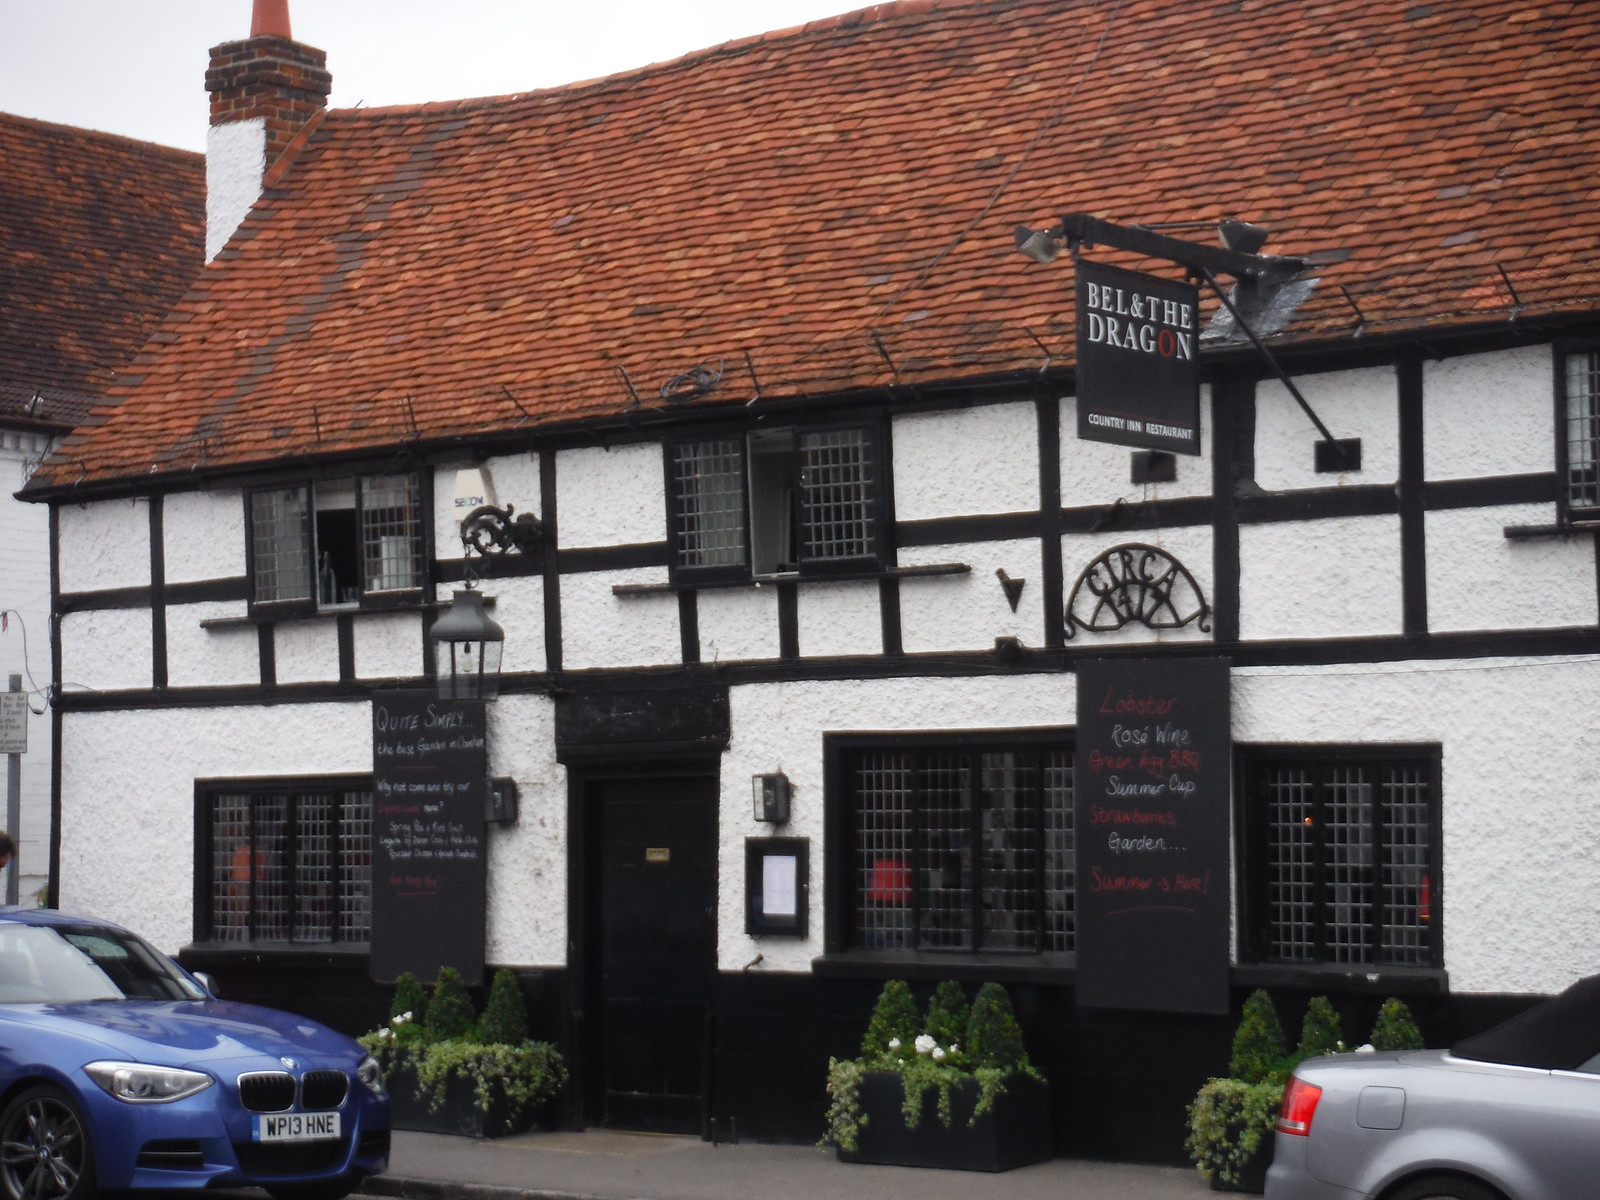 One of 6 Pubs en-route in Cookham SWC Walk 189 Beeches Way: West Drayton to Cookham